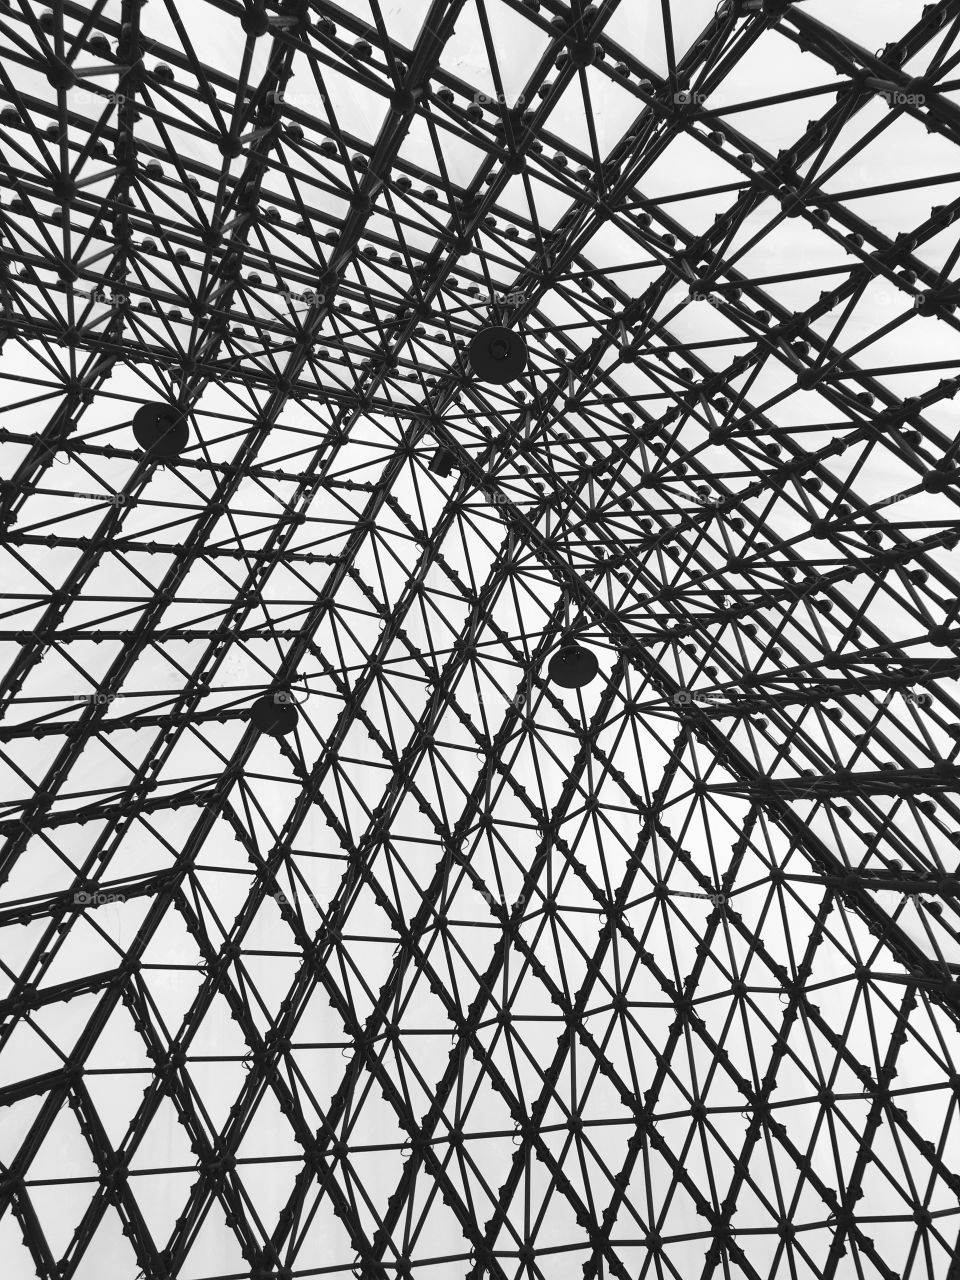 Modern Architecture at Window of the World Pyramid in Shenzhen - China